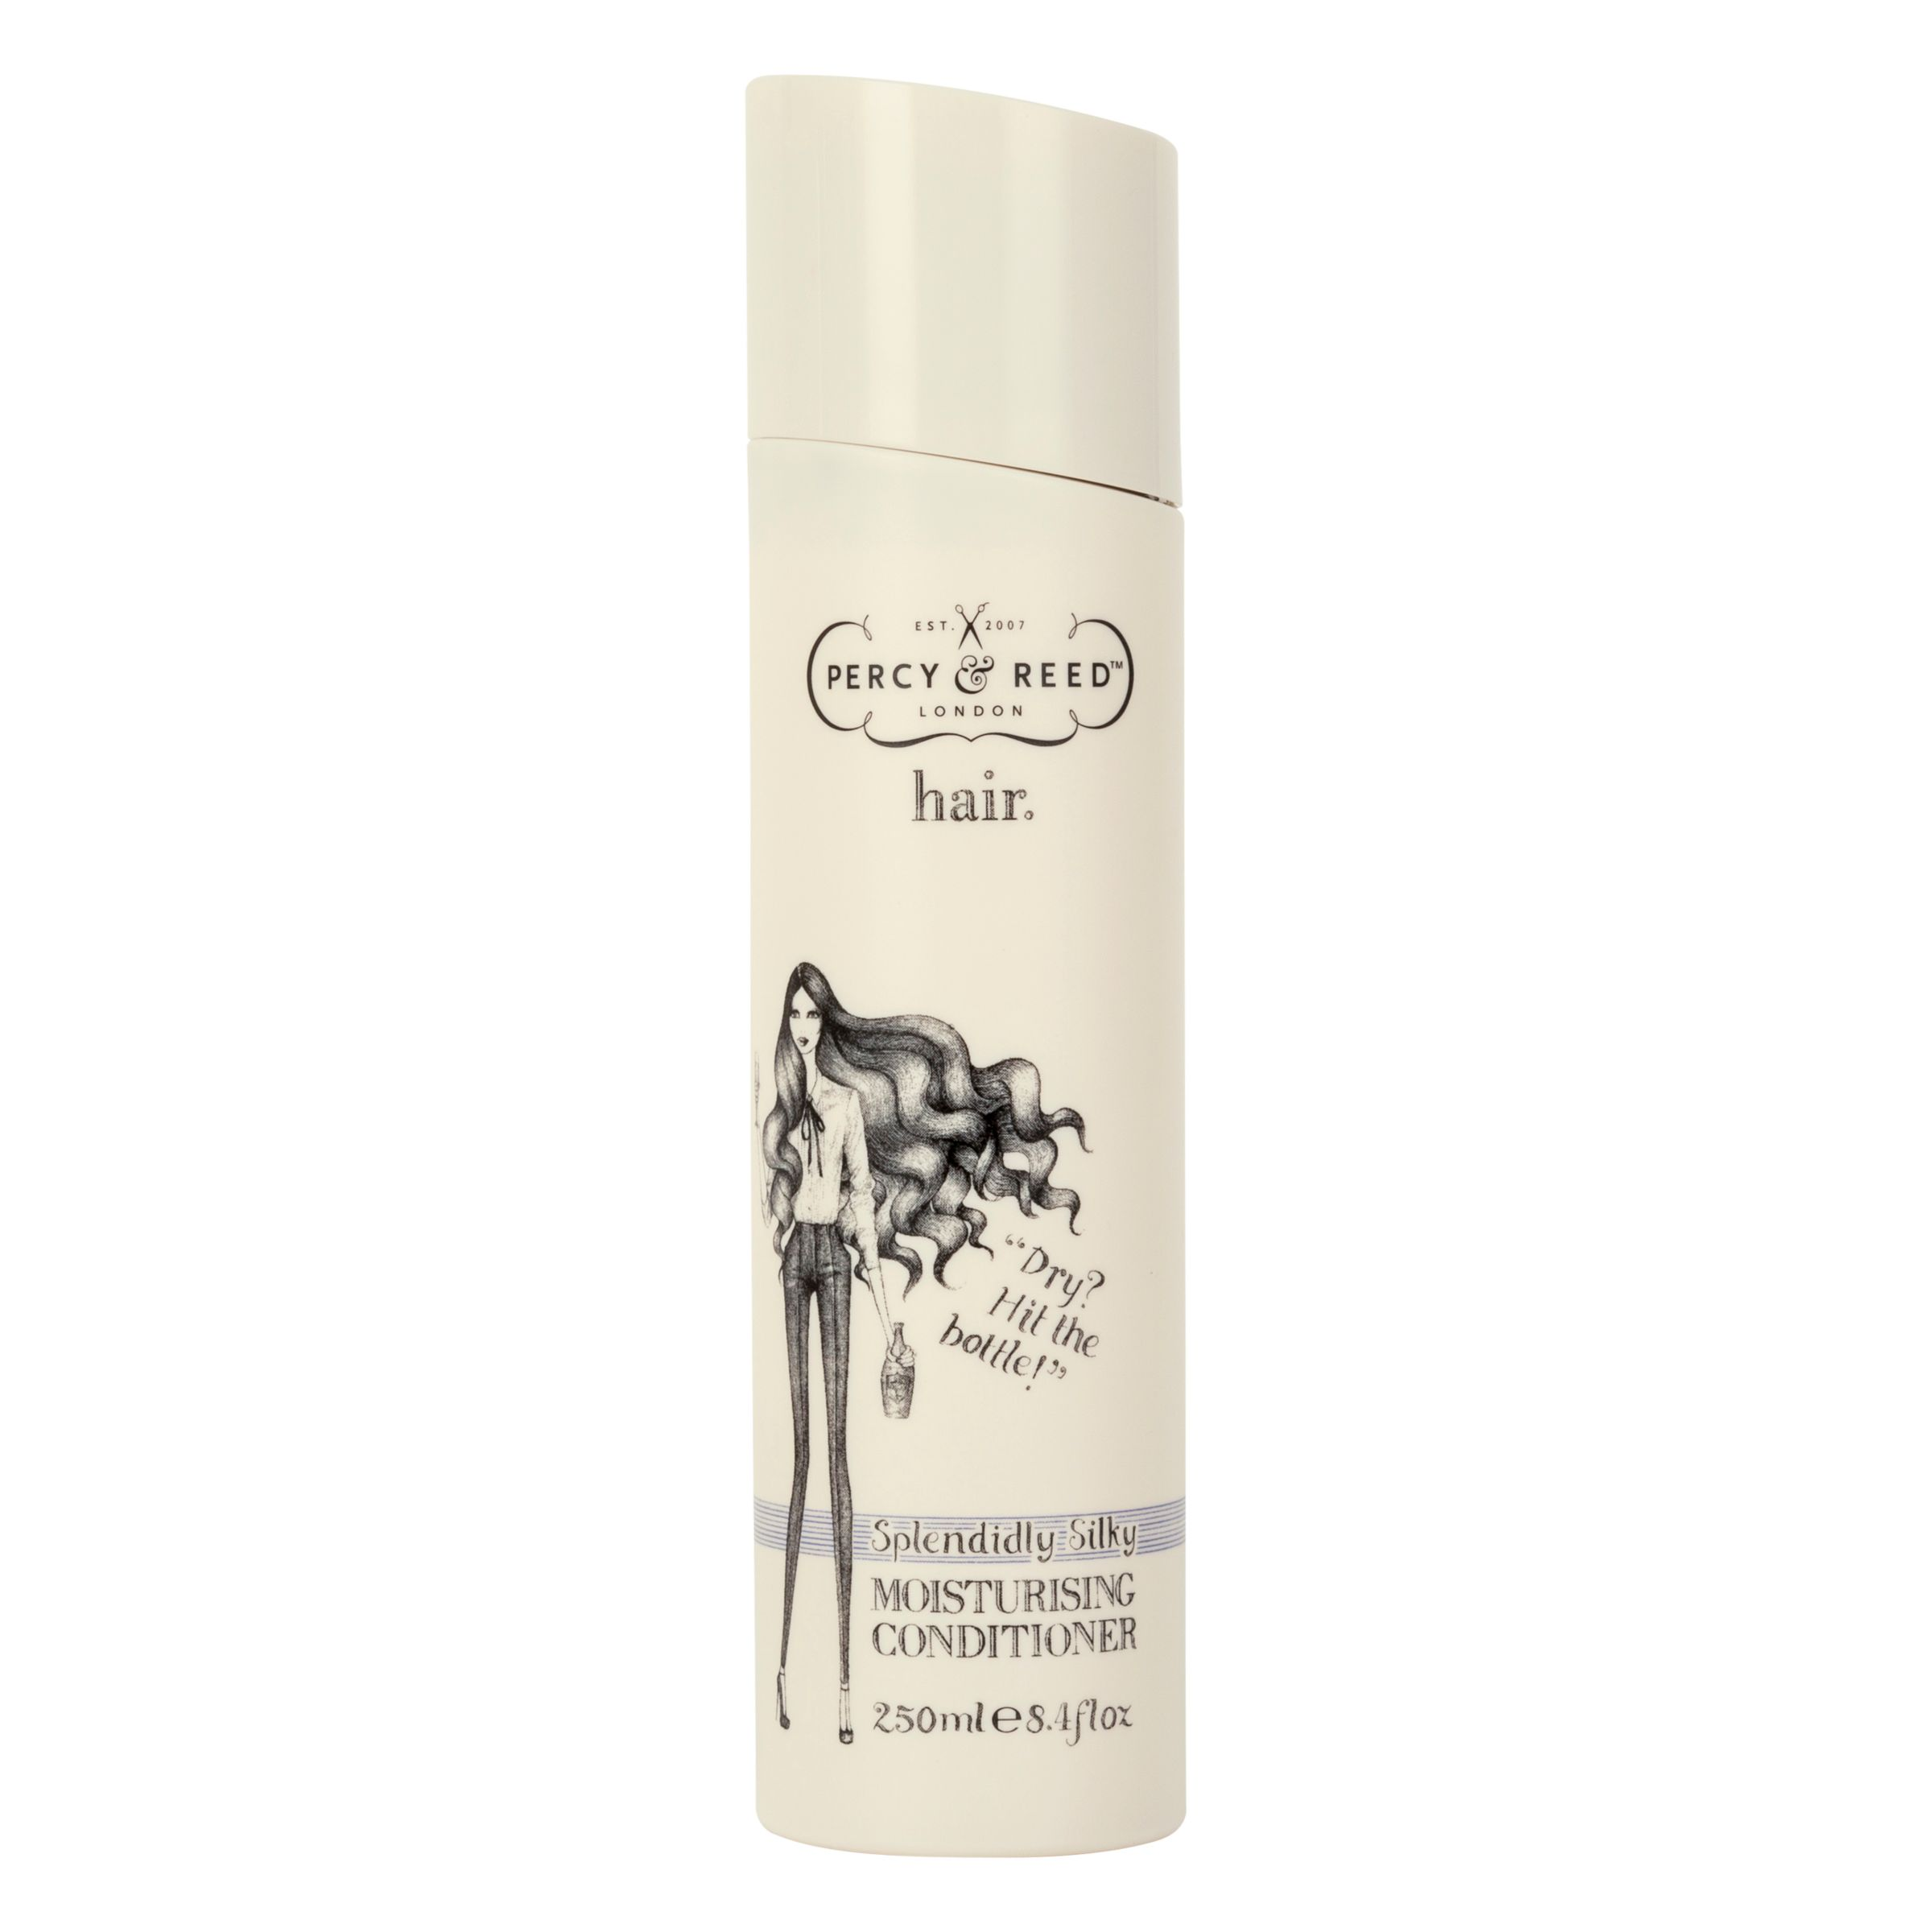 Percy & Reed Percy & Reed Splendidly Silky Moisturising Conditioner, 250ml